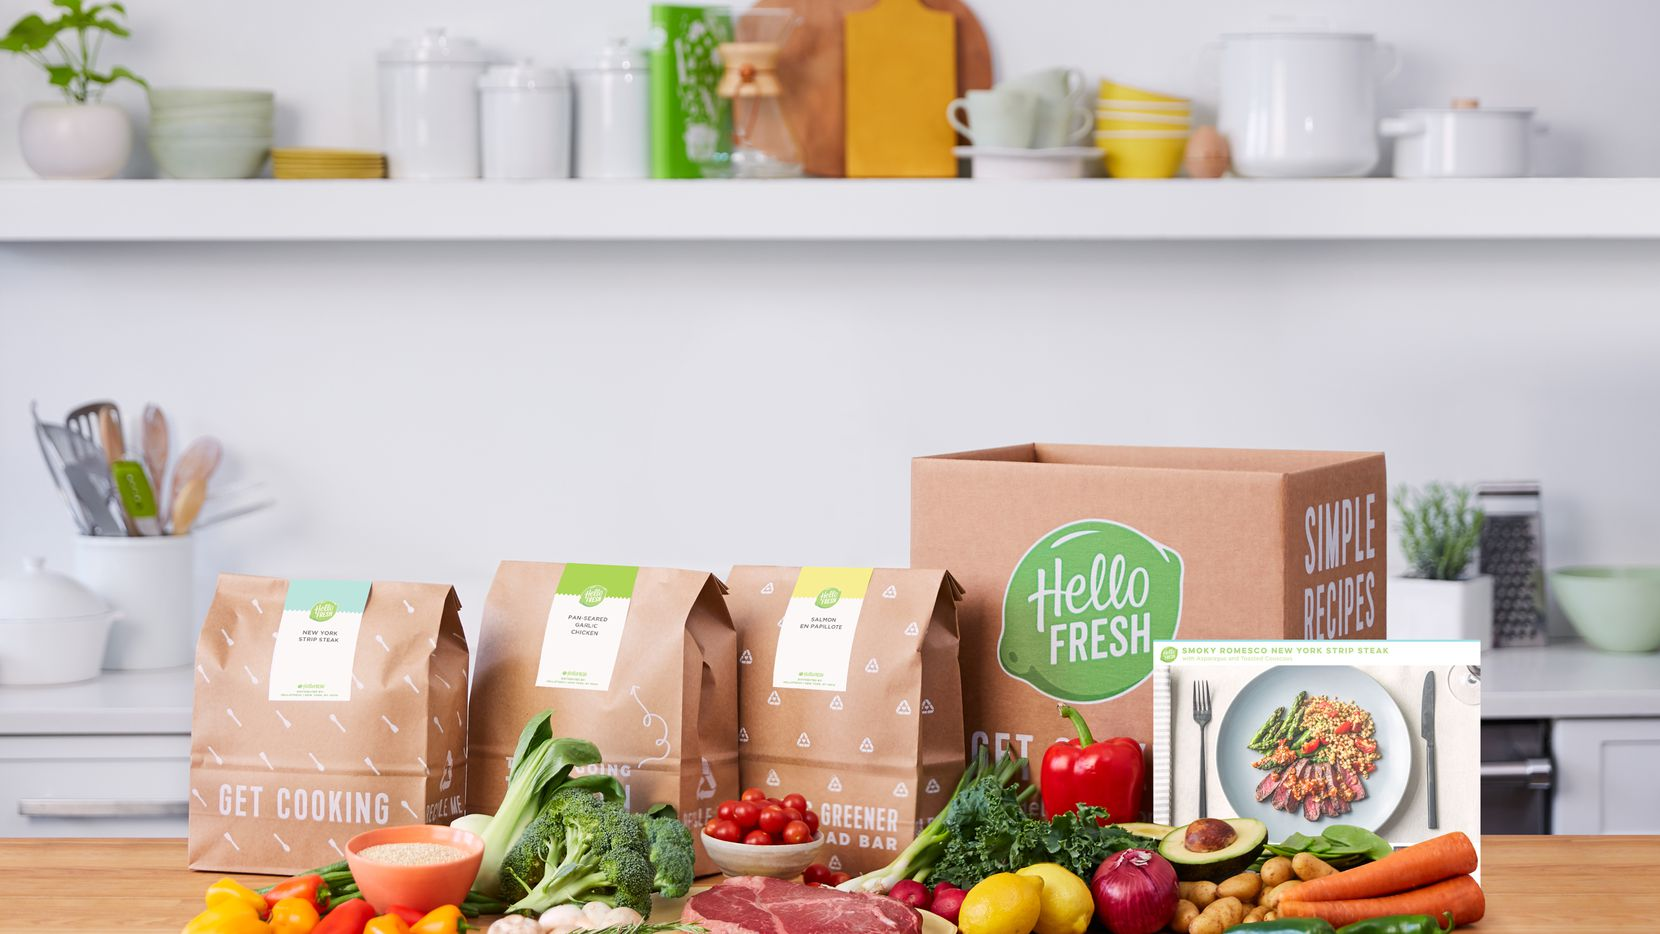 HelloFresh sells prepackaged meal kits to almost 2 million U.S. customers.